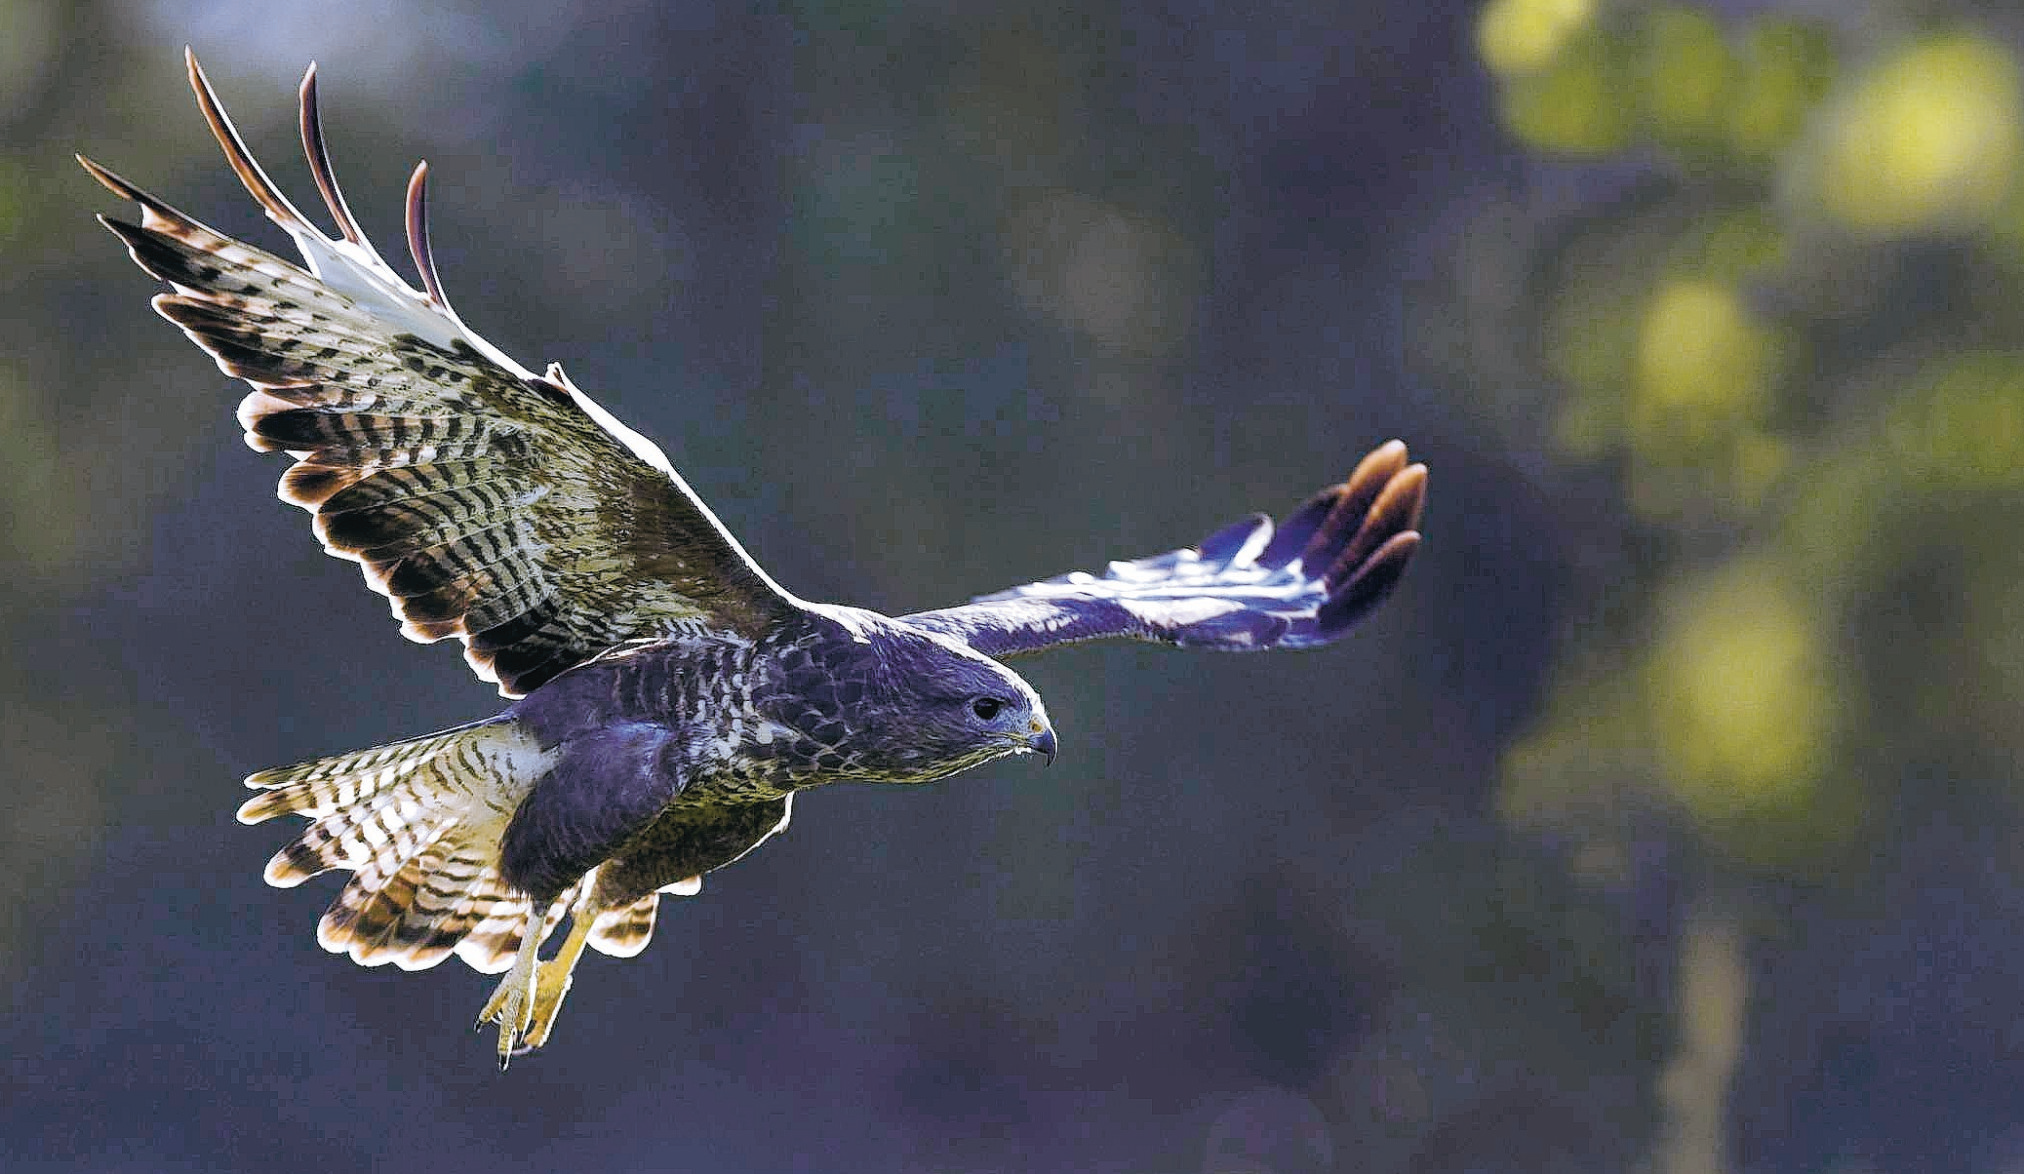 A buzzard in flight.